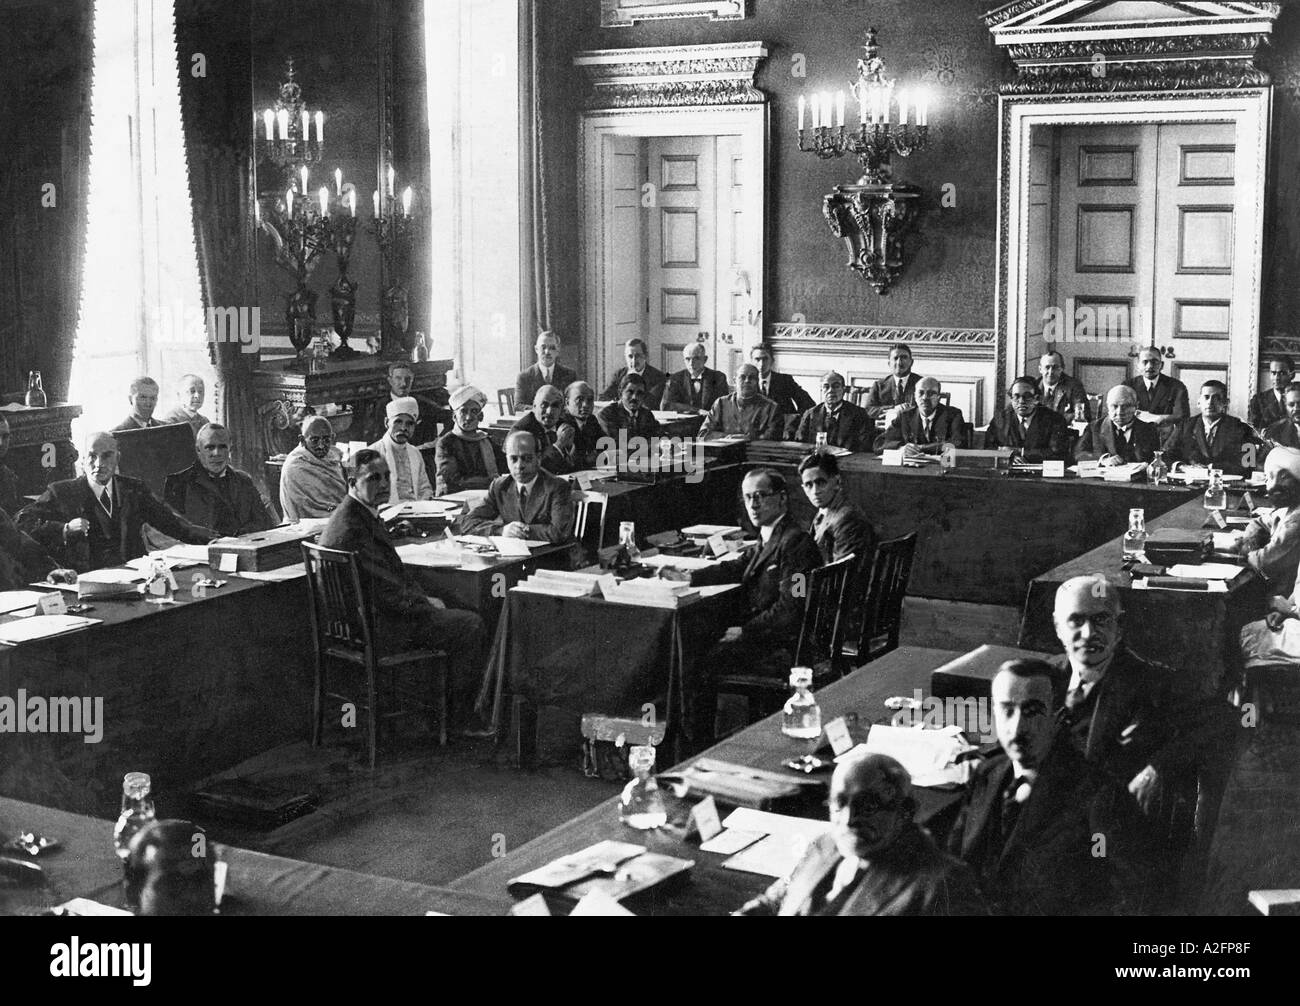 Picture of: Round Table Conference Fotos E Imagenes De Stock Alamy